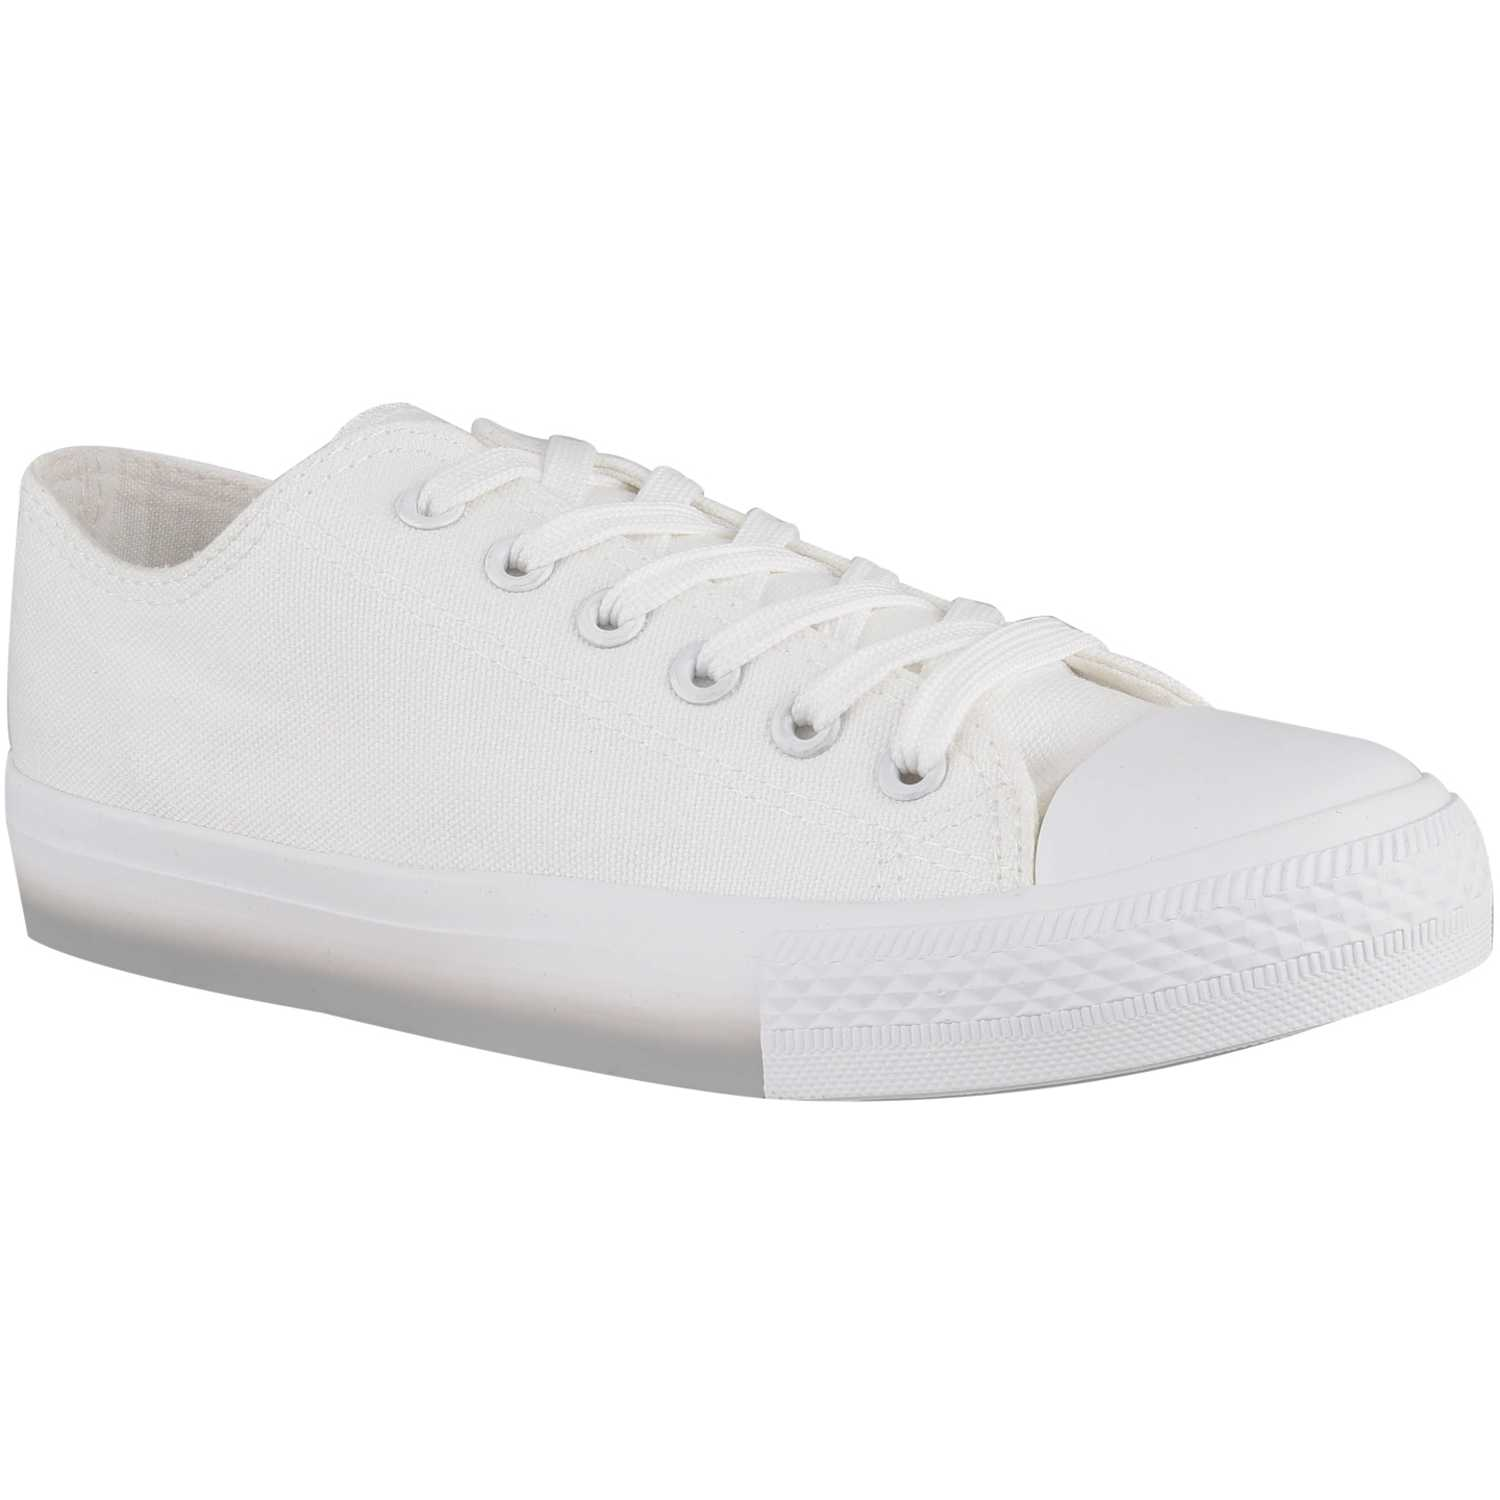 Platanitos zc 8081 Blanco Zapatillas Fashion